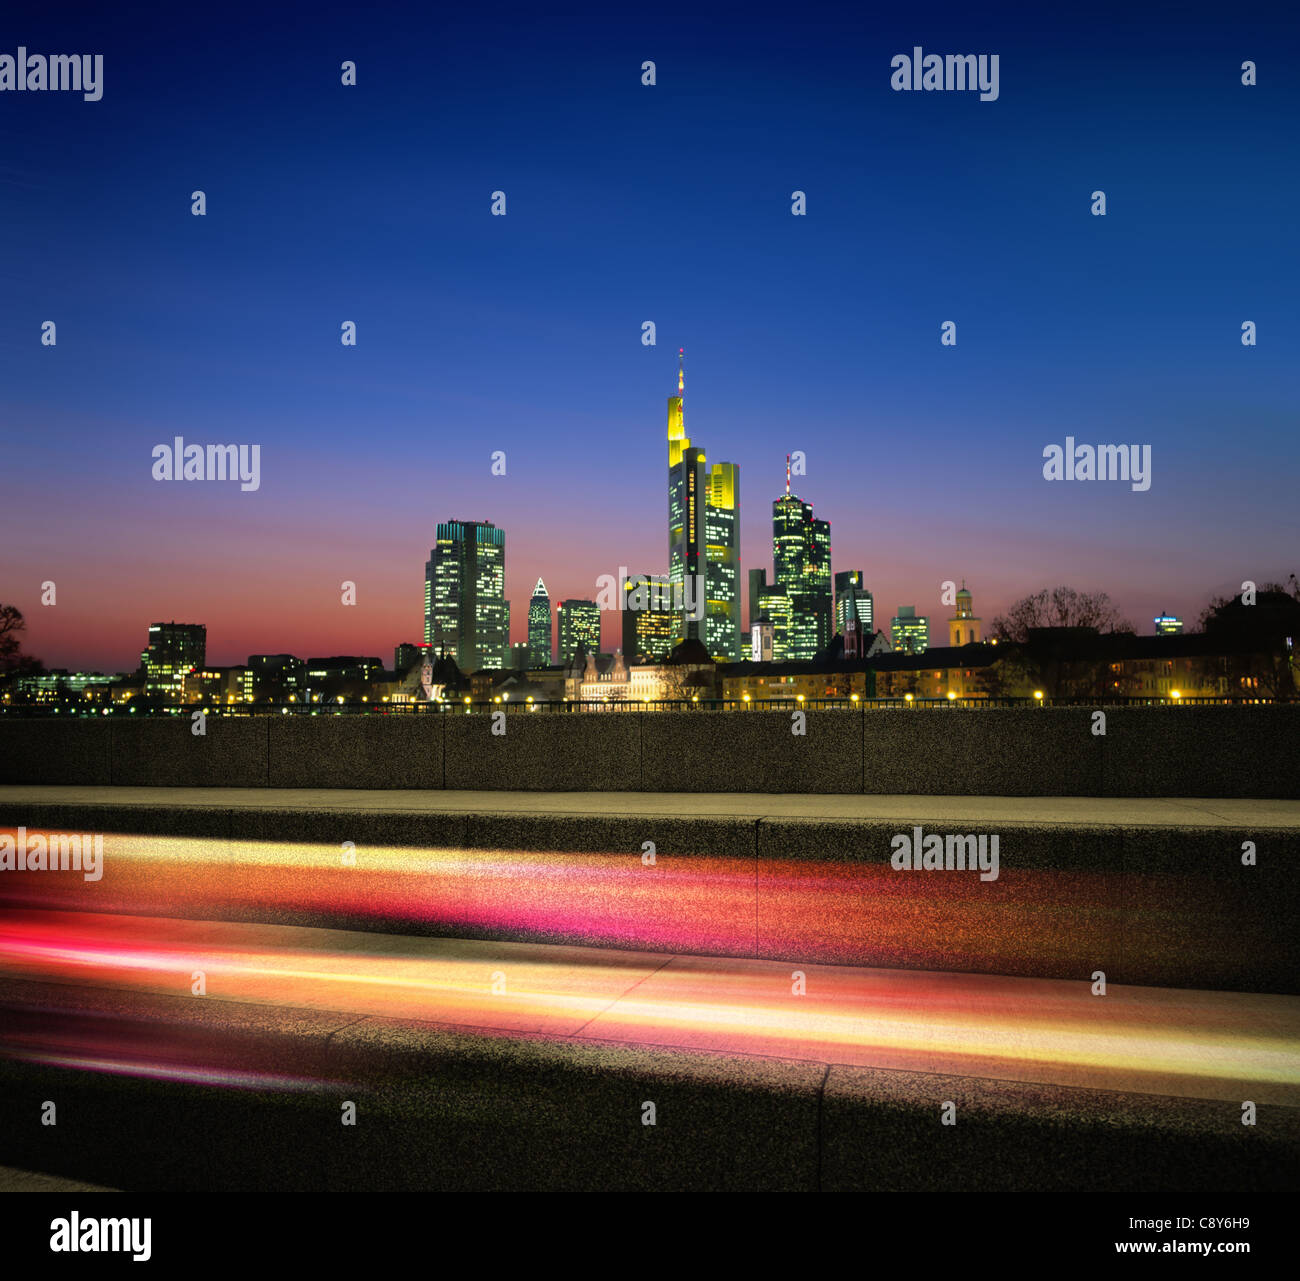 megapolis in the night and motion light - Stock Image